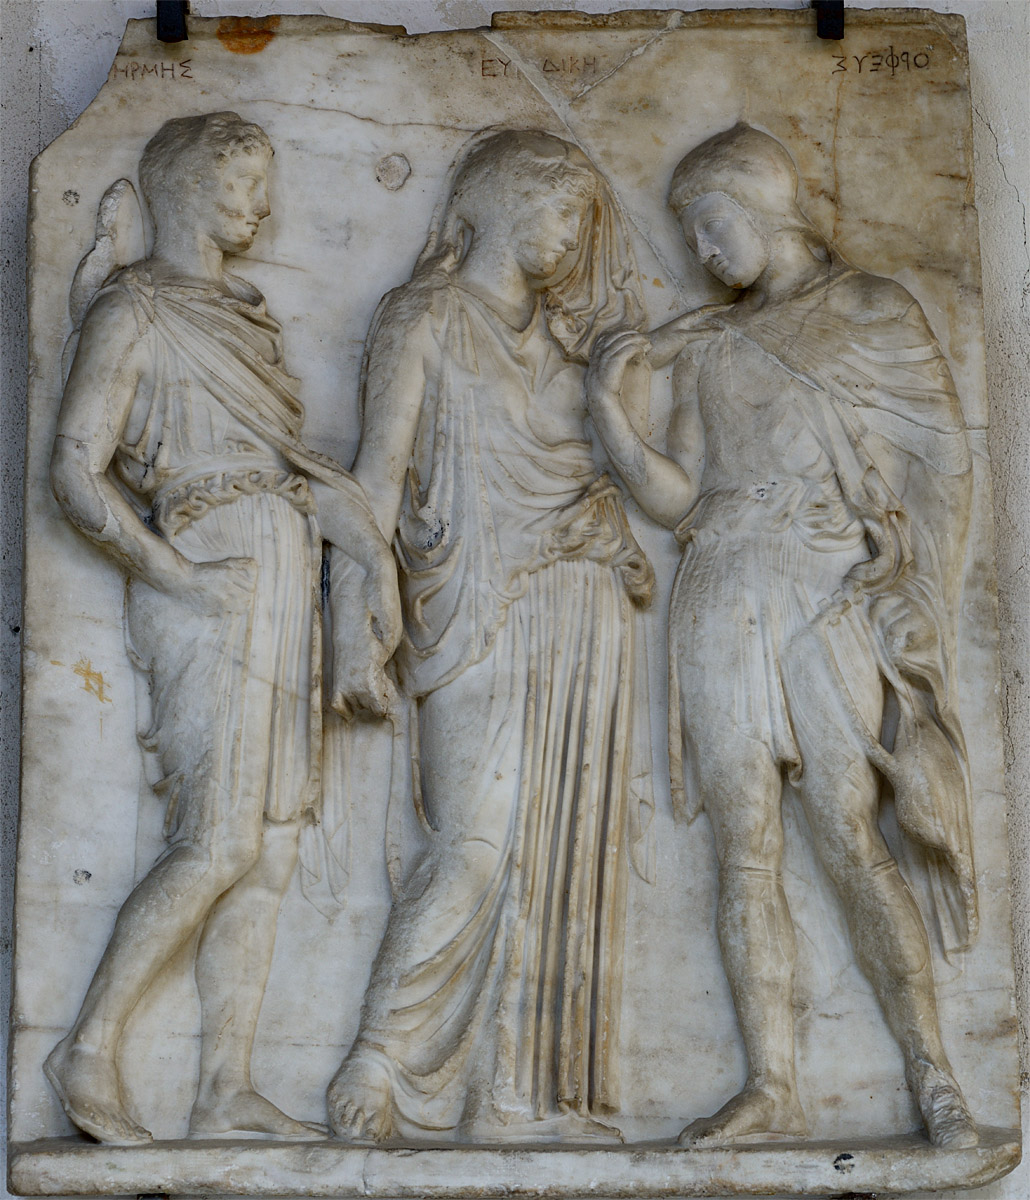 Orpheus, Eurydice and Hermes. Relief. Roman copy of the augustan age from a Greek original of the second half of 5th cent. BCE by Alcamenes, disciple of Phidias. Marble. Inv. 6727. Naples, National Archaeological Museum